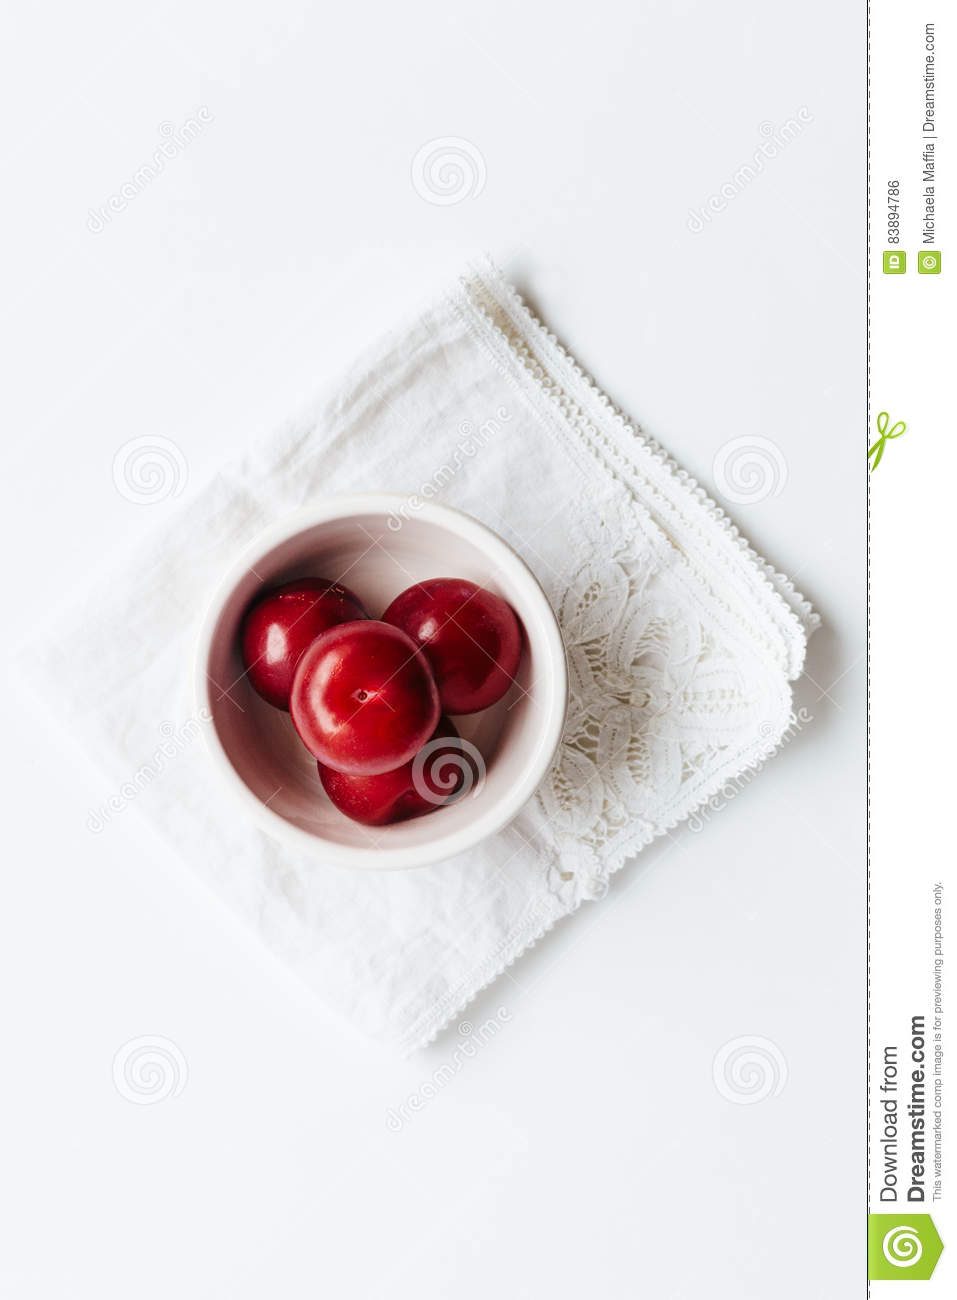 Small bowl of red plums on white vintage napkin